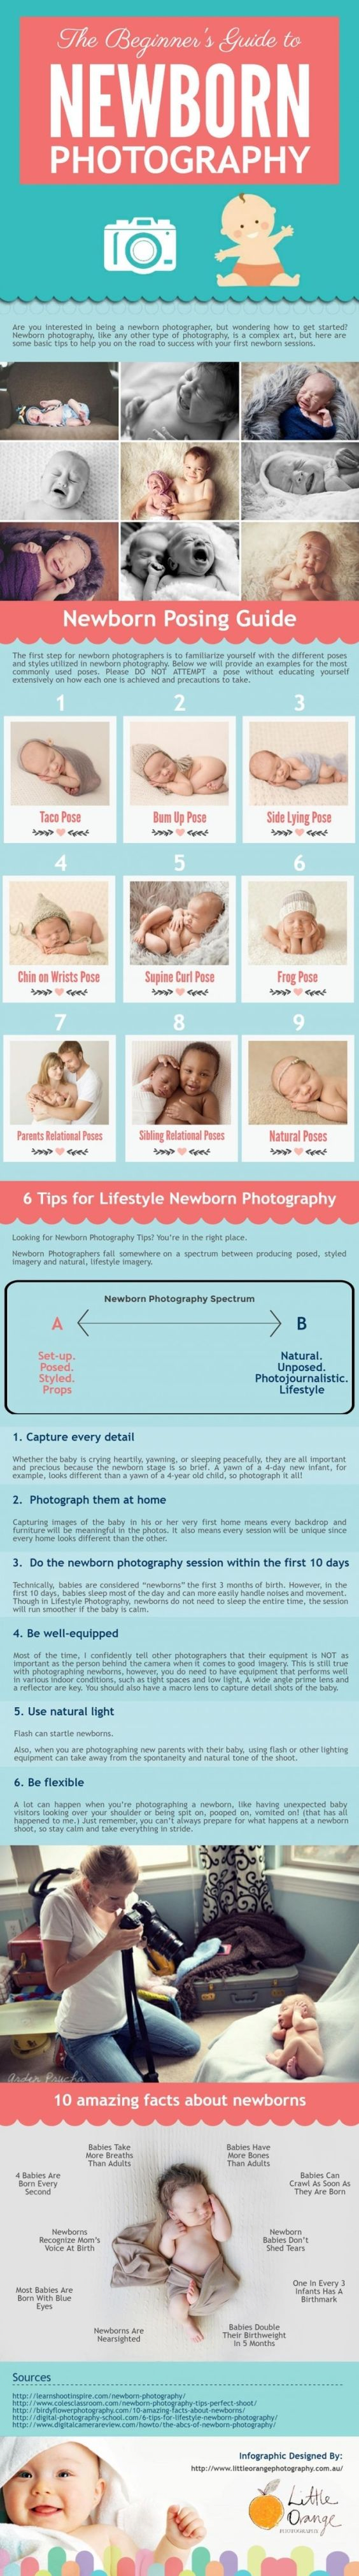 The Beginner's Guide to Newborn Photography #Infographics by bernadine